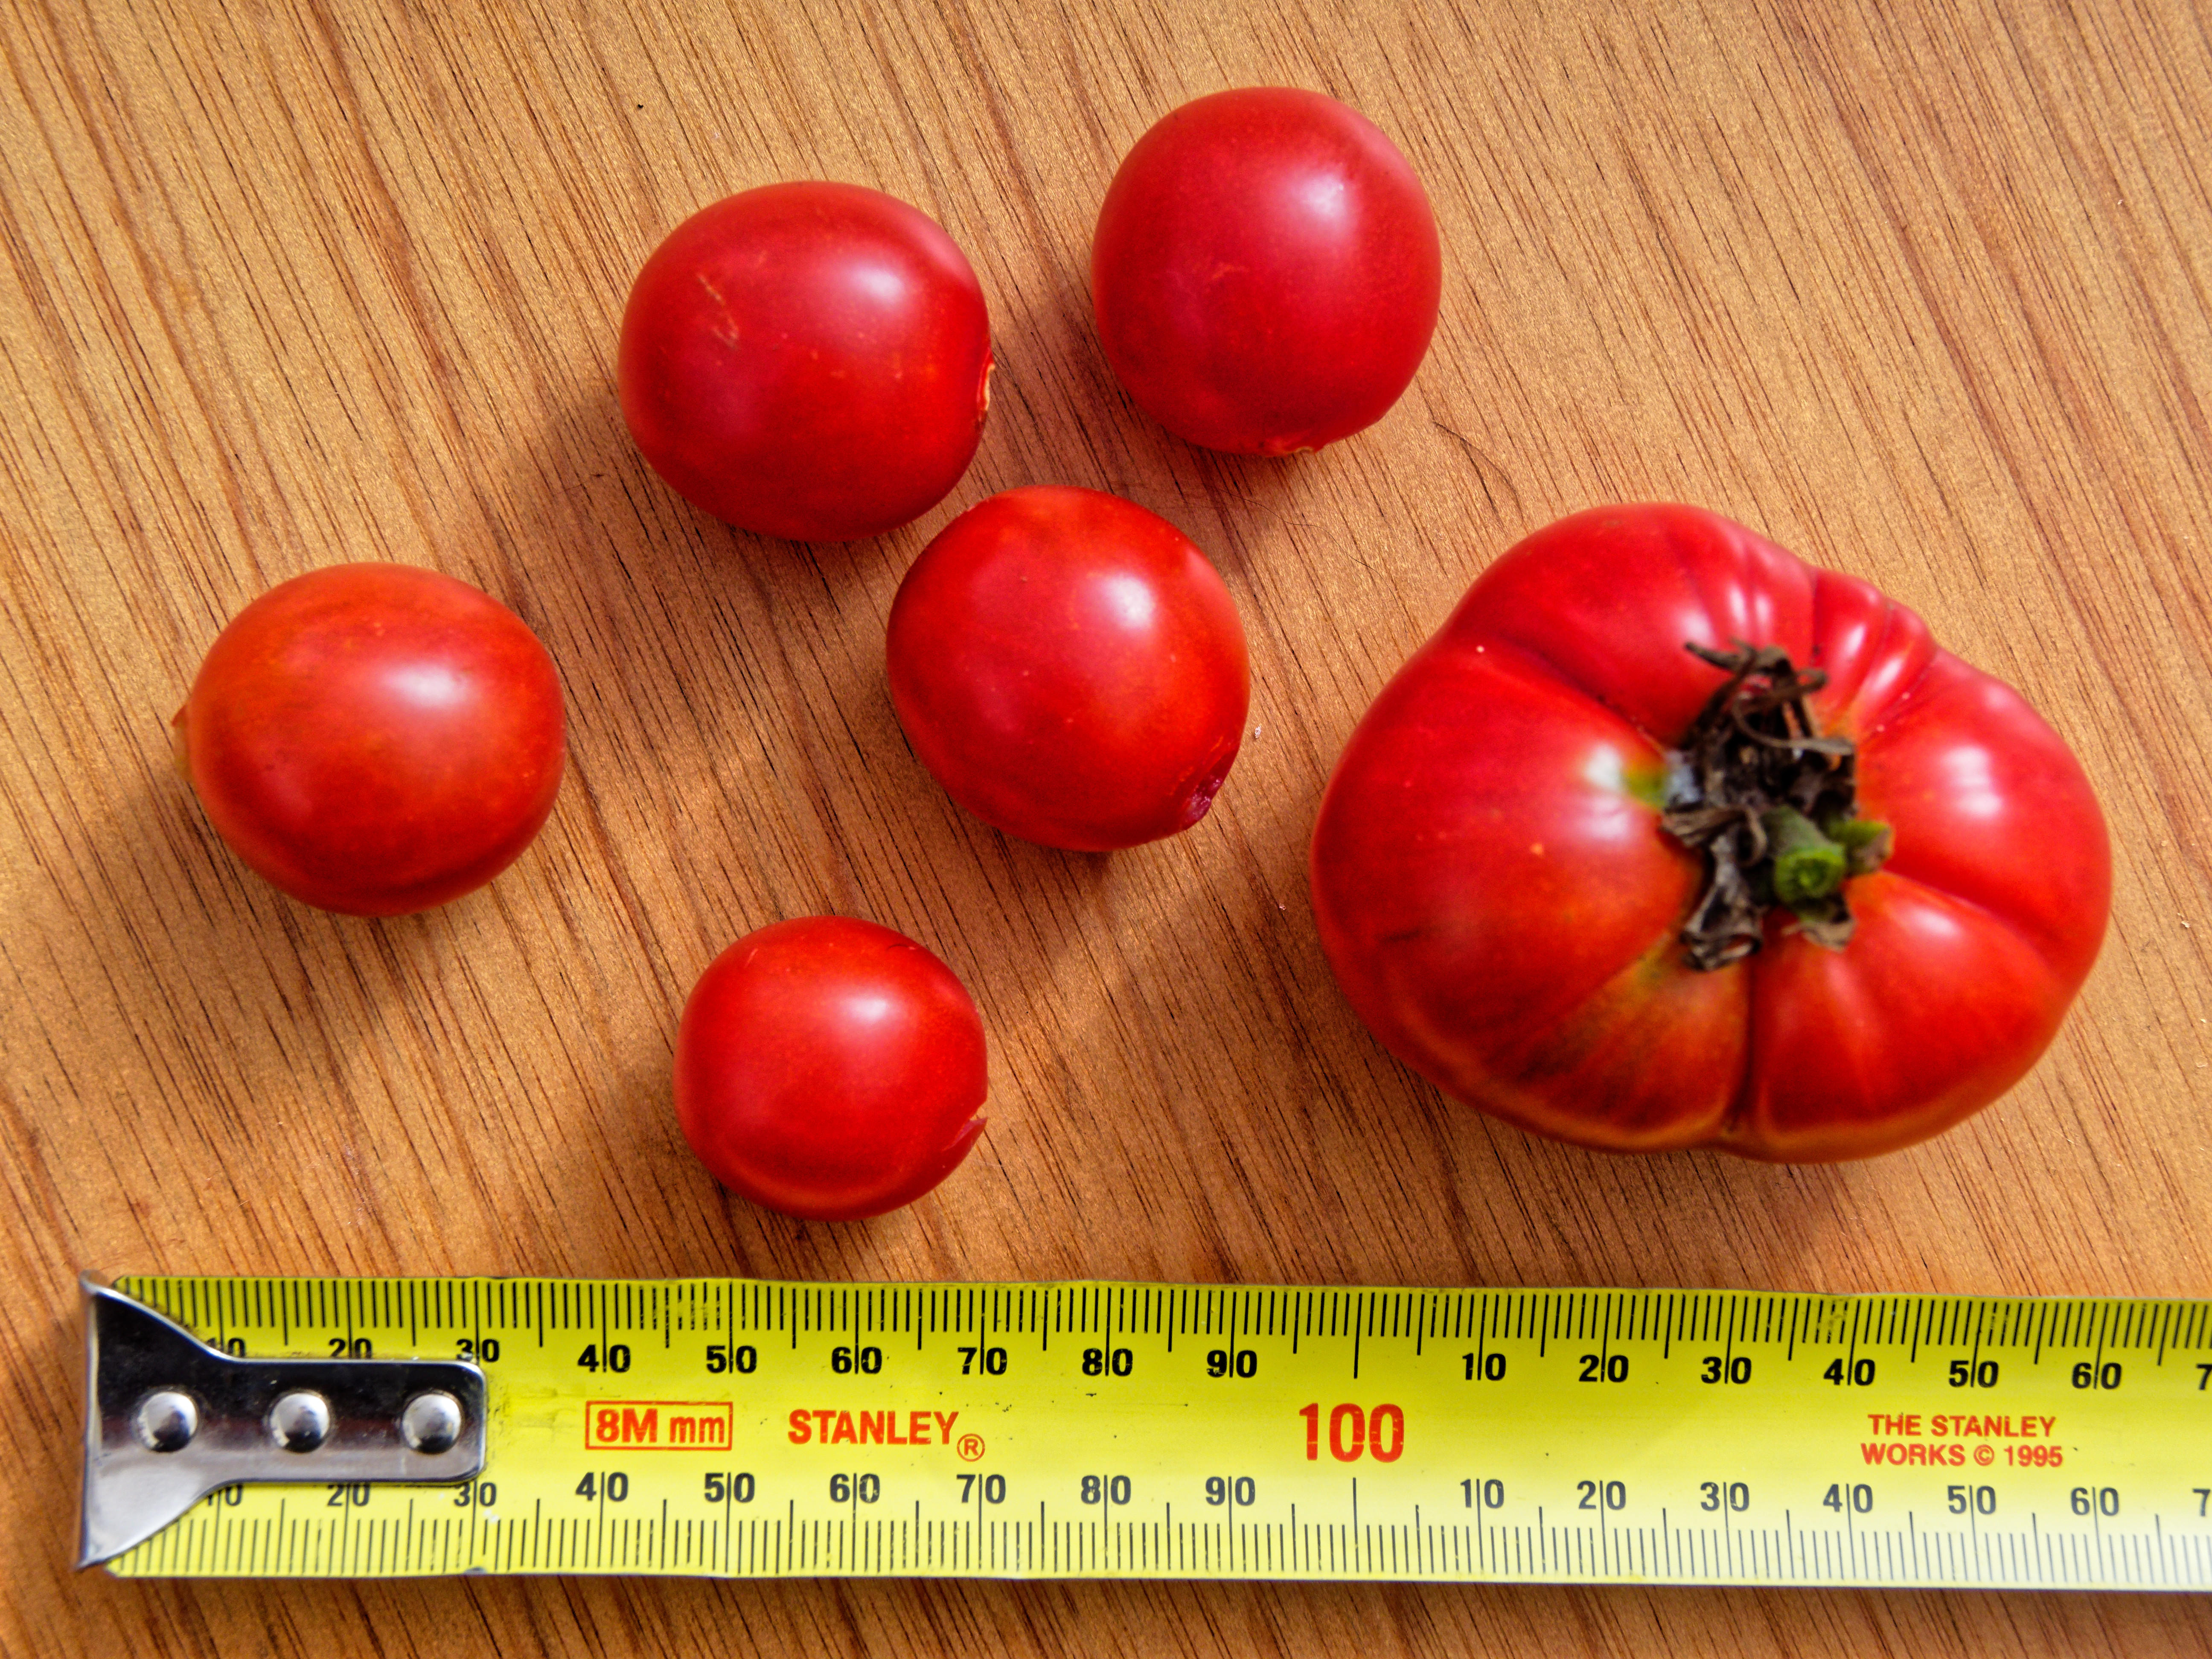 This should be Tomatoes-2.jpeg.  Is it missing?